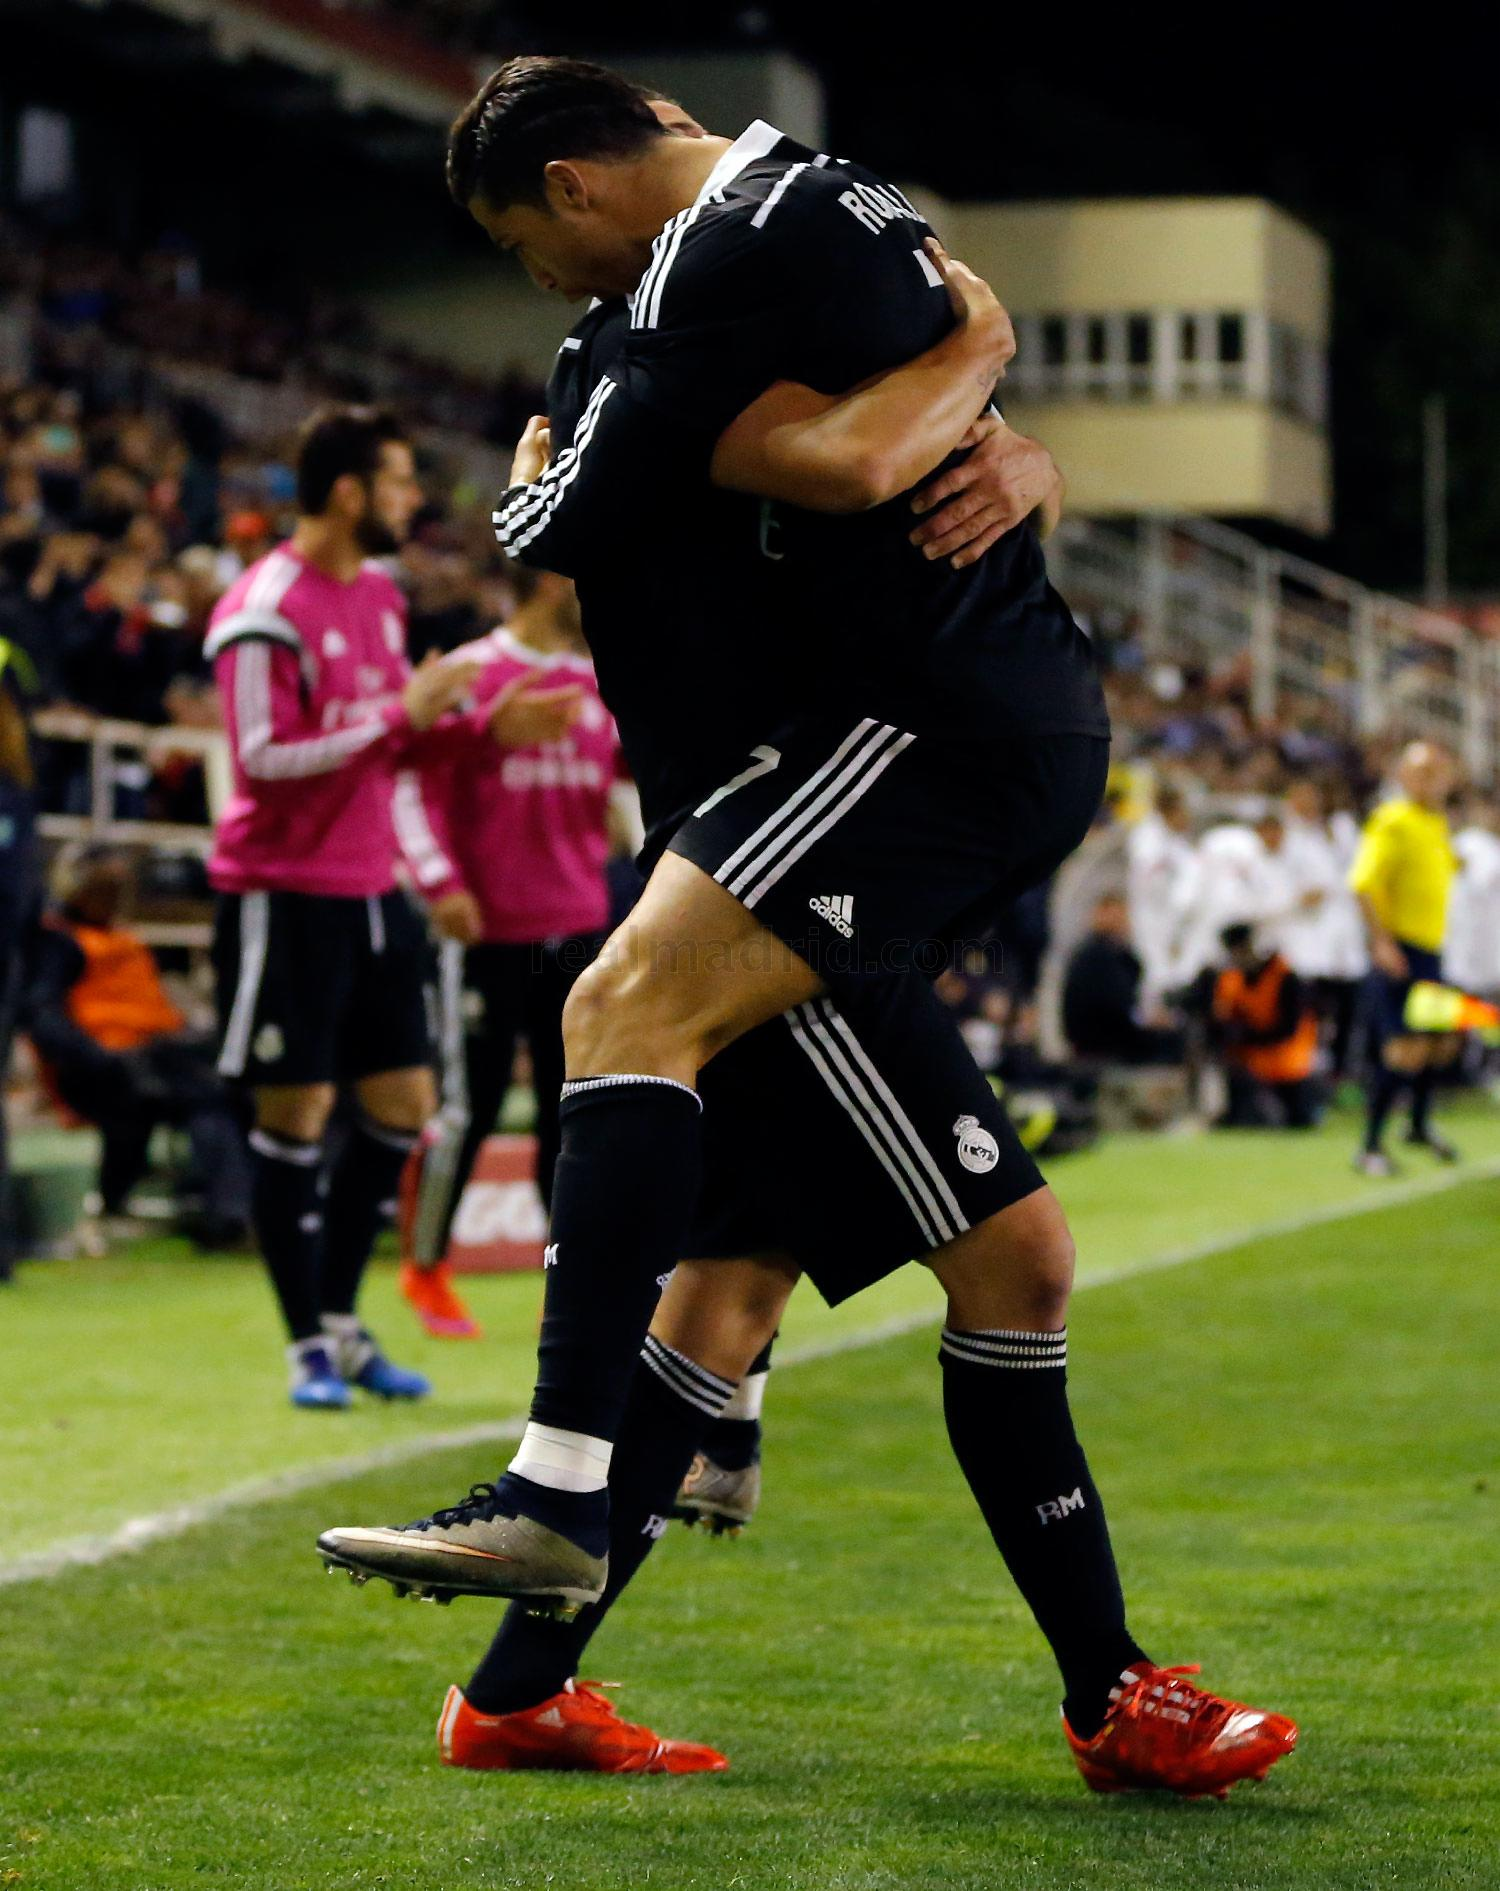 Real Madrid - Rayo Vallecano - Real Madrid - 09-04-2015